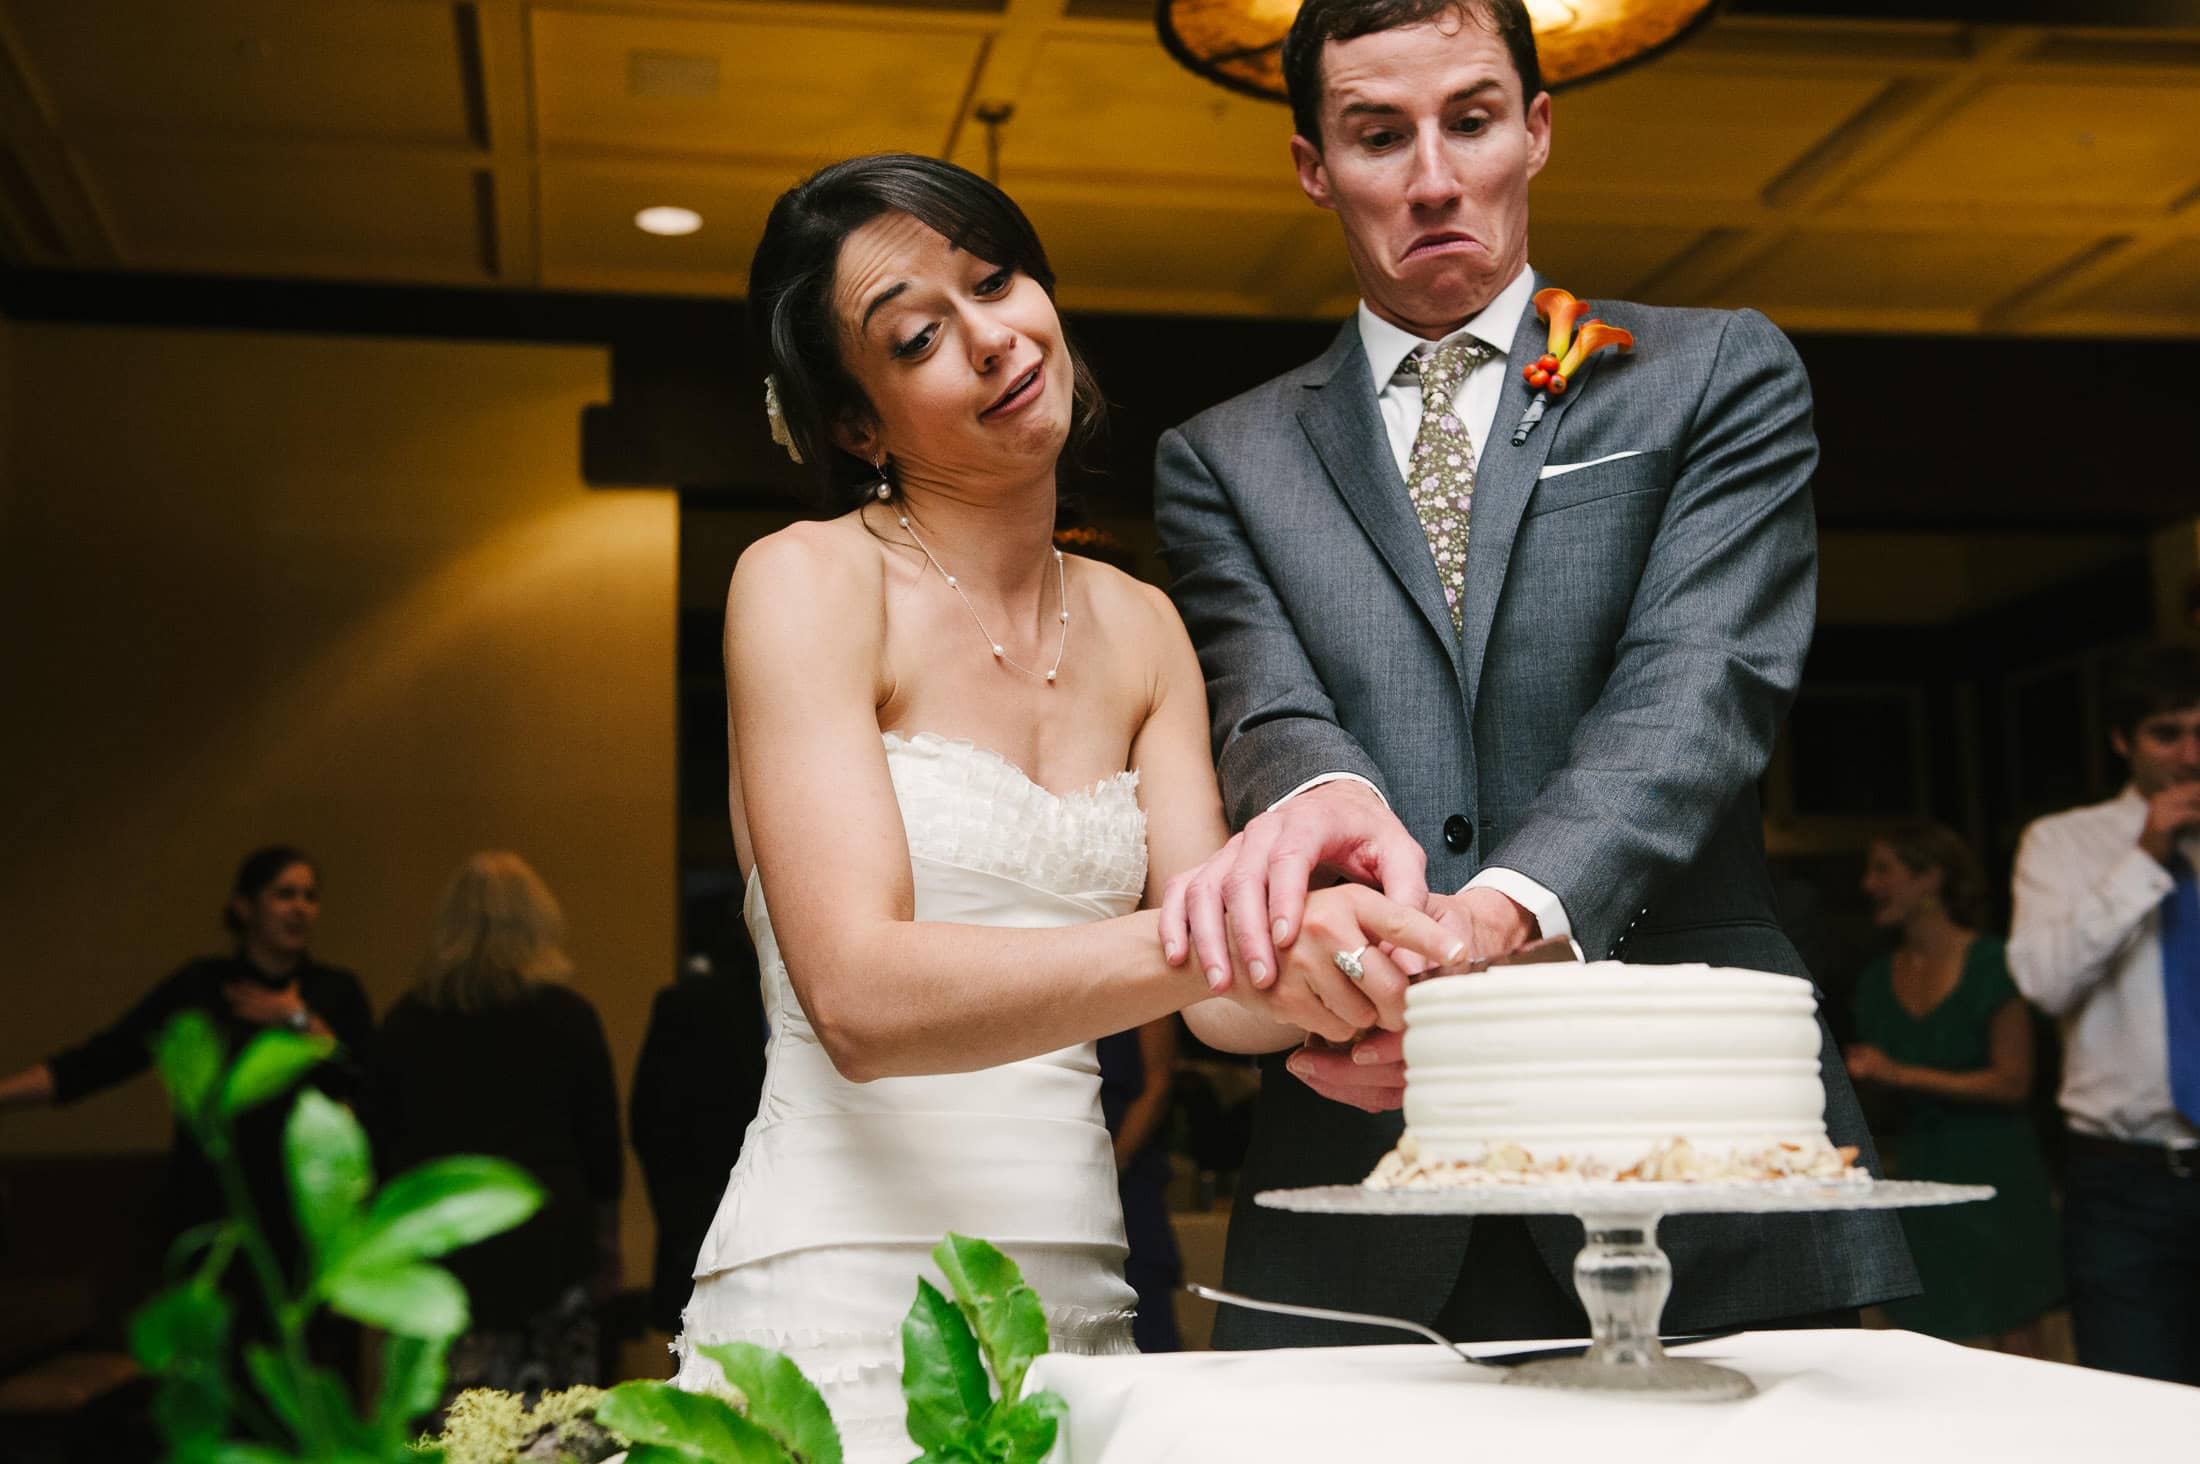 Fun cake cutting at berkeley wedding